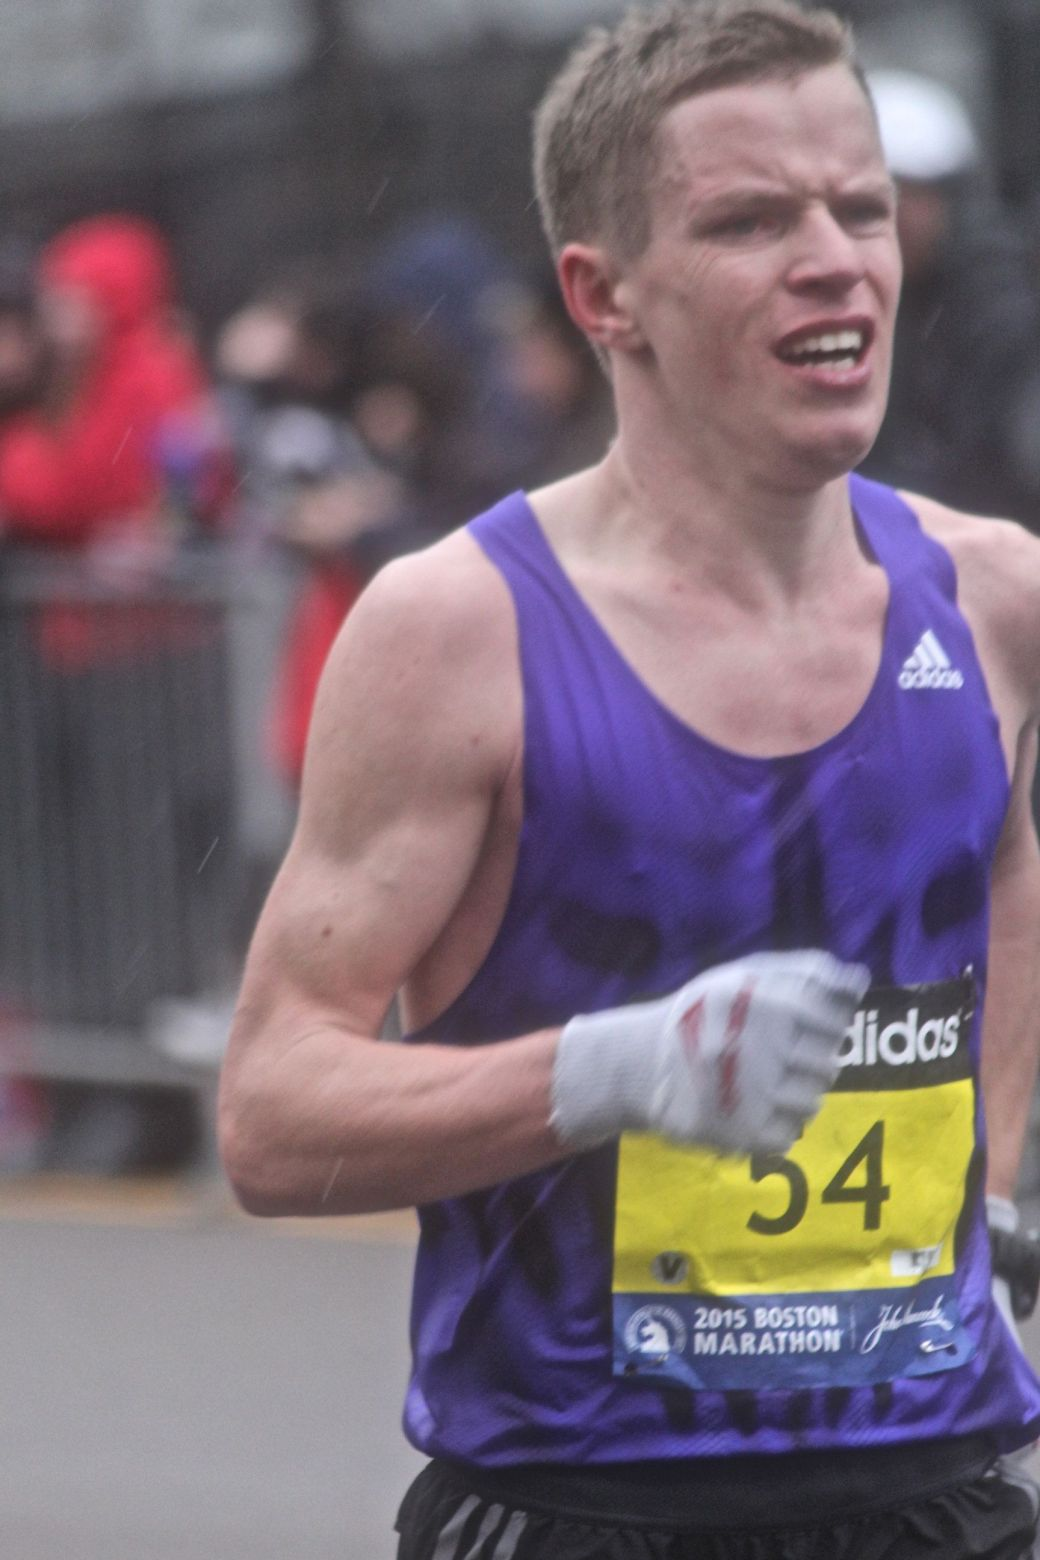 boston marathon april 20 2015 racer number 54